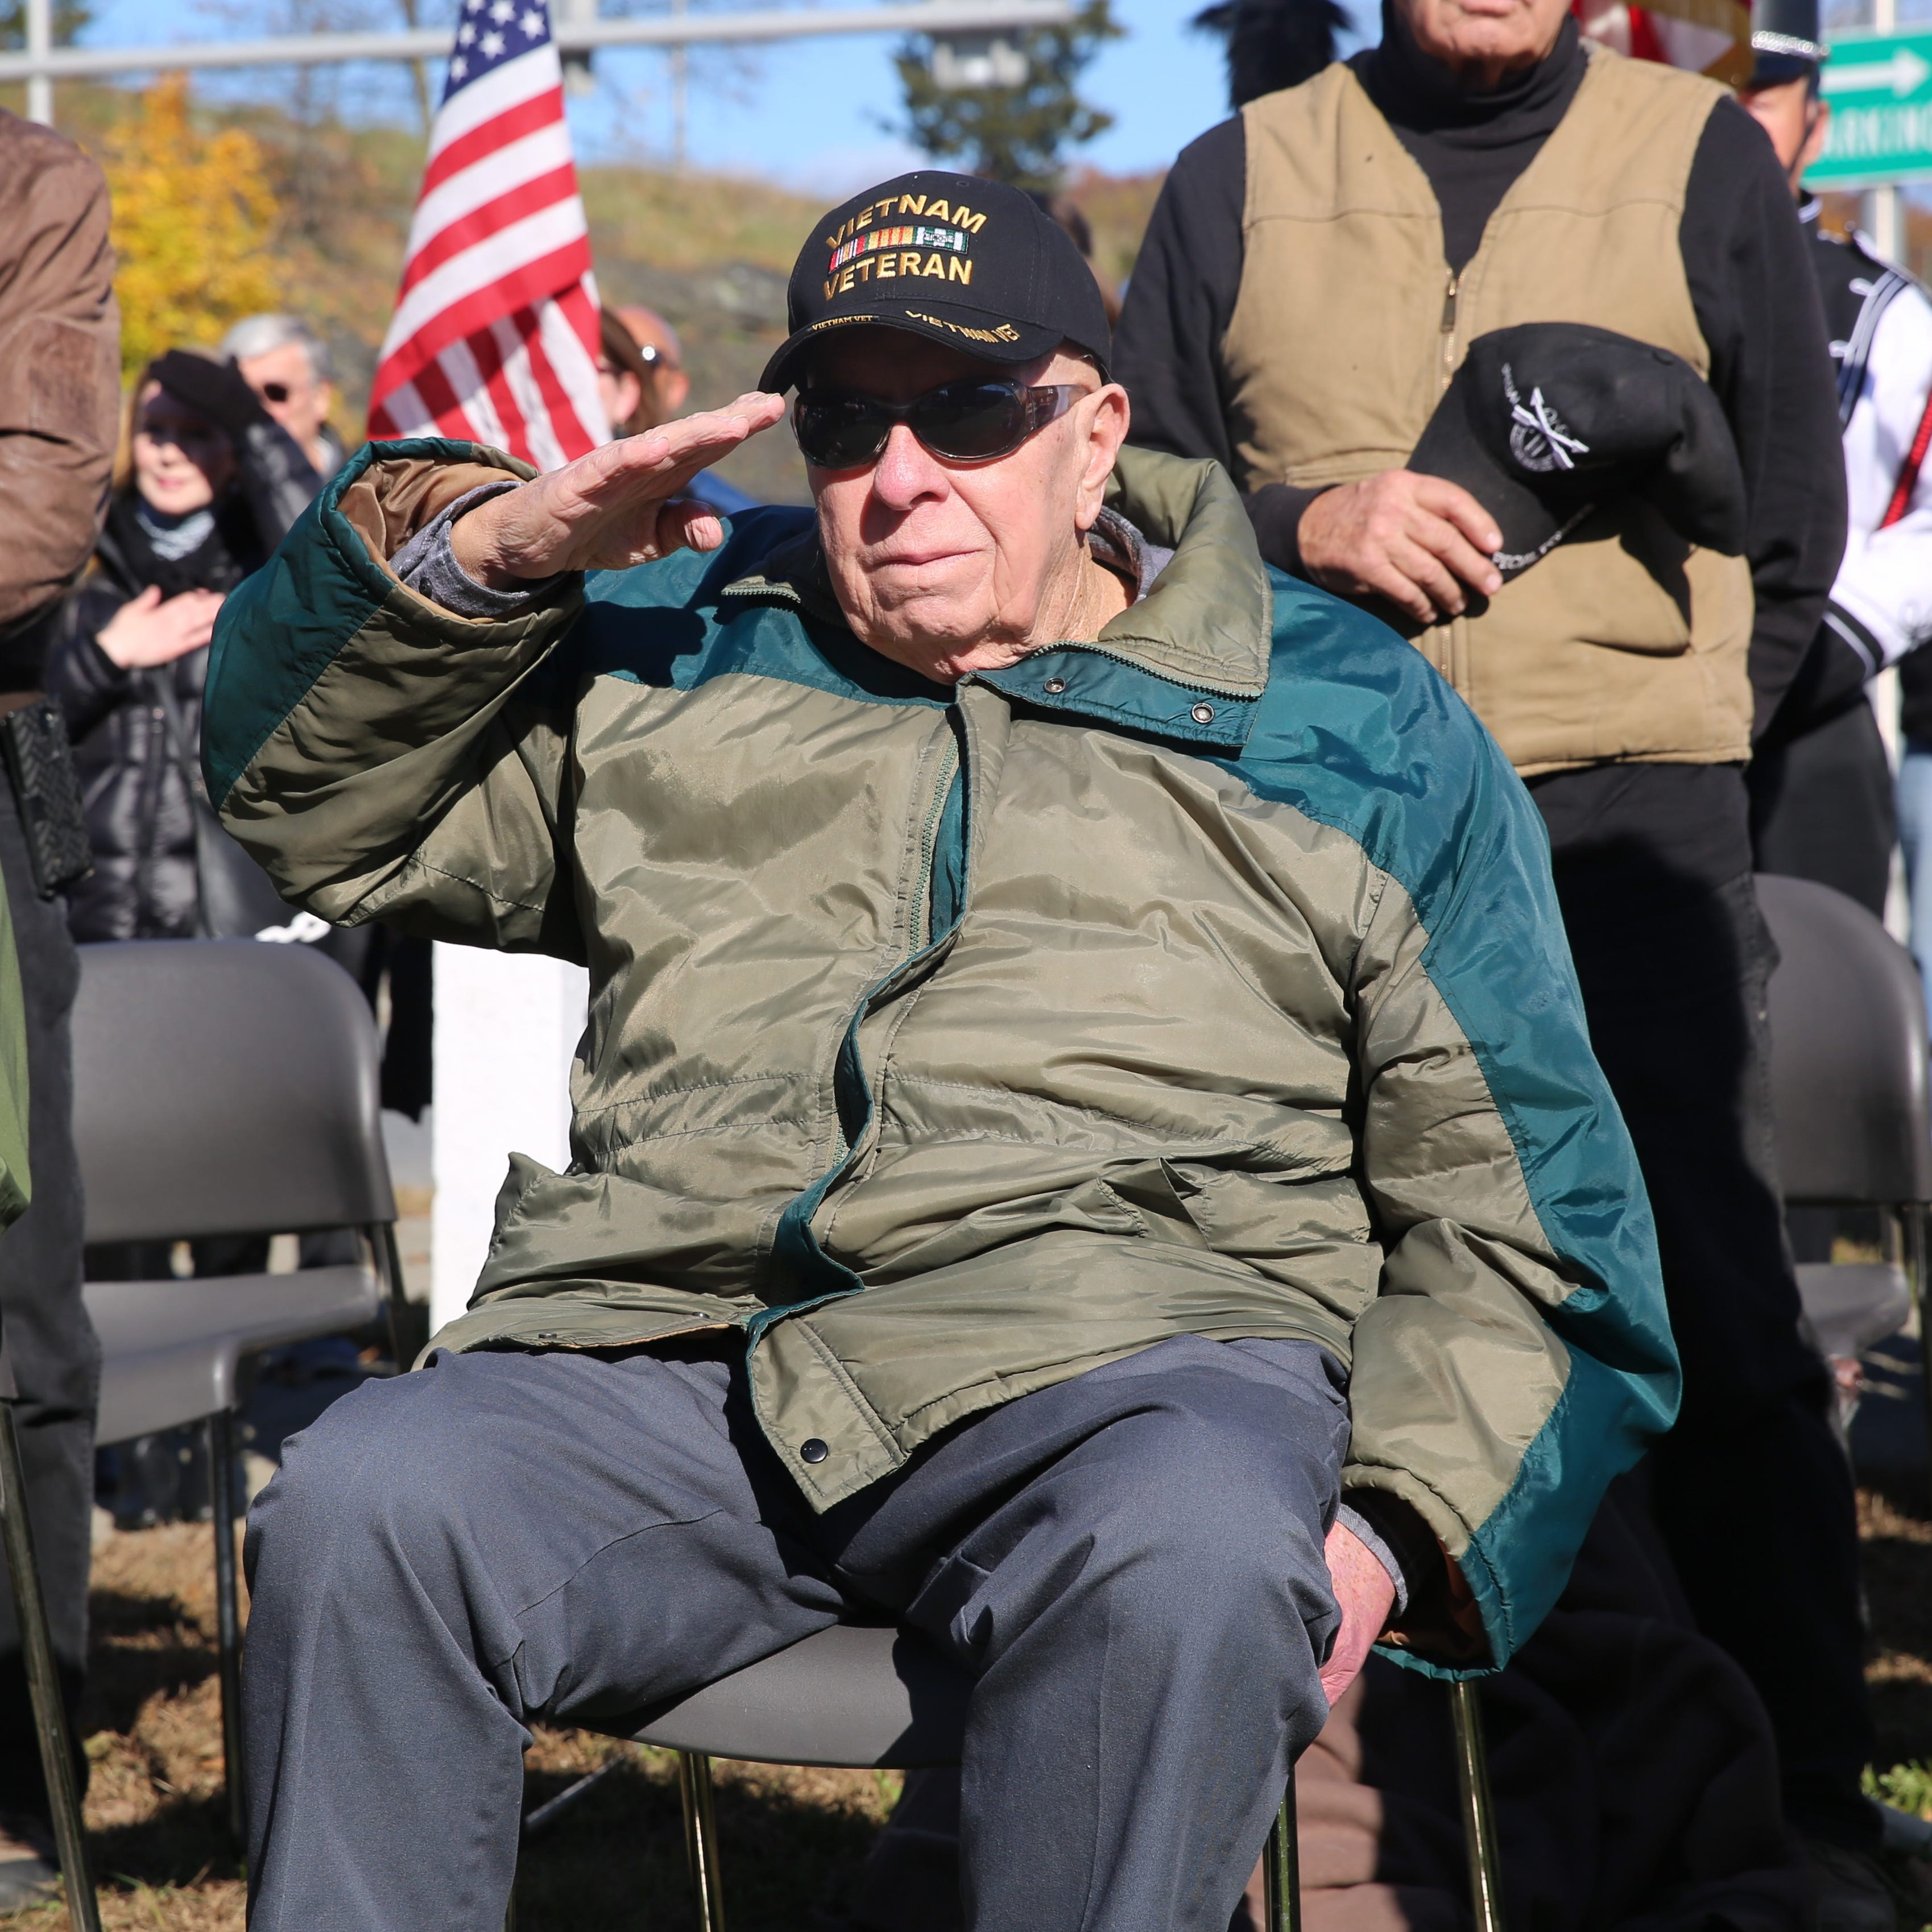 George Kennedy, a 75-year-old Vietnam War veteran from the Town of Beekman, raises a salute during the singing of the national anthem at the annual Dutchess County Veterans Day ceremony on Sunday. For veterans, he said the day is about stopping to think about the people with which they served.